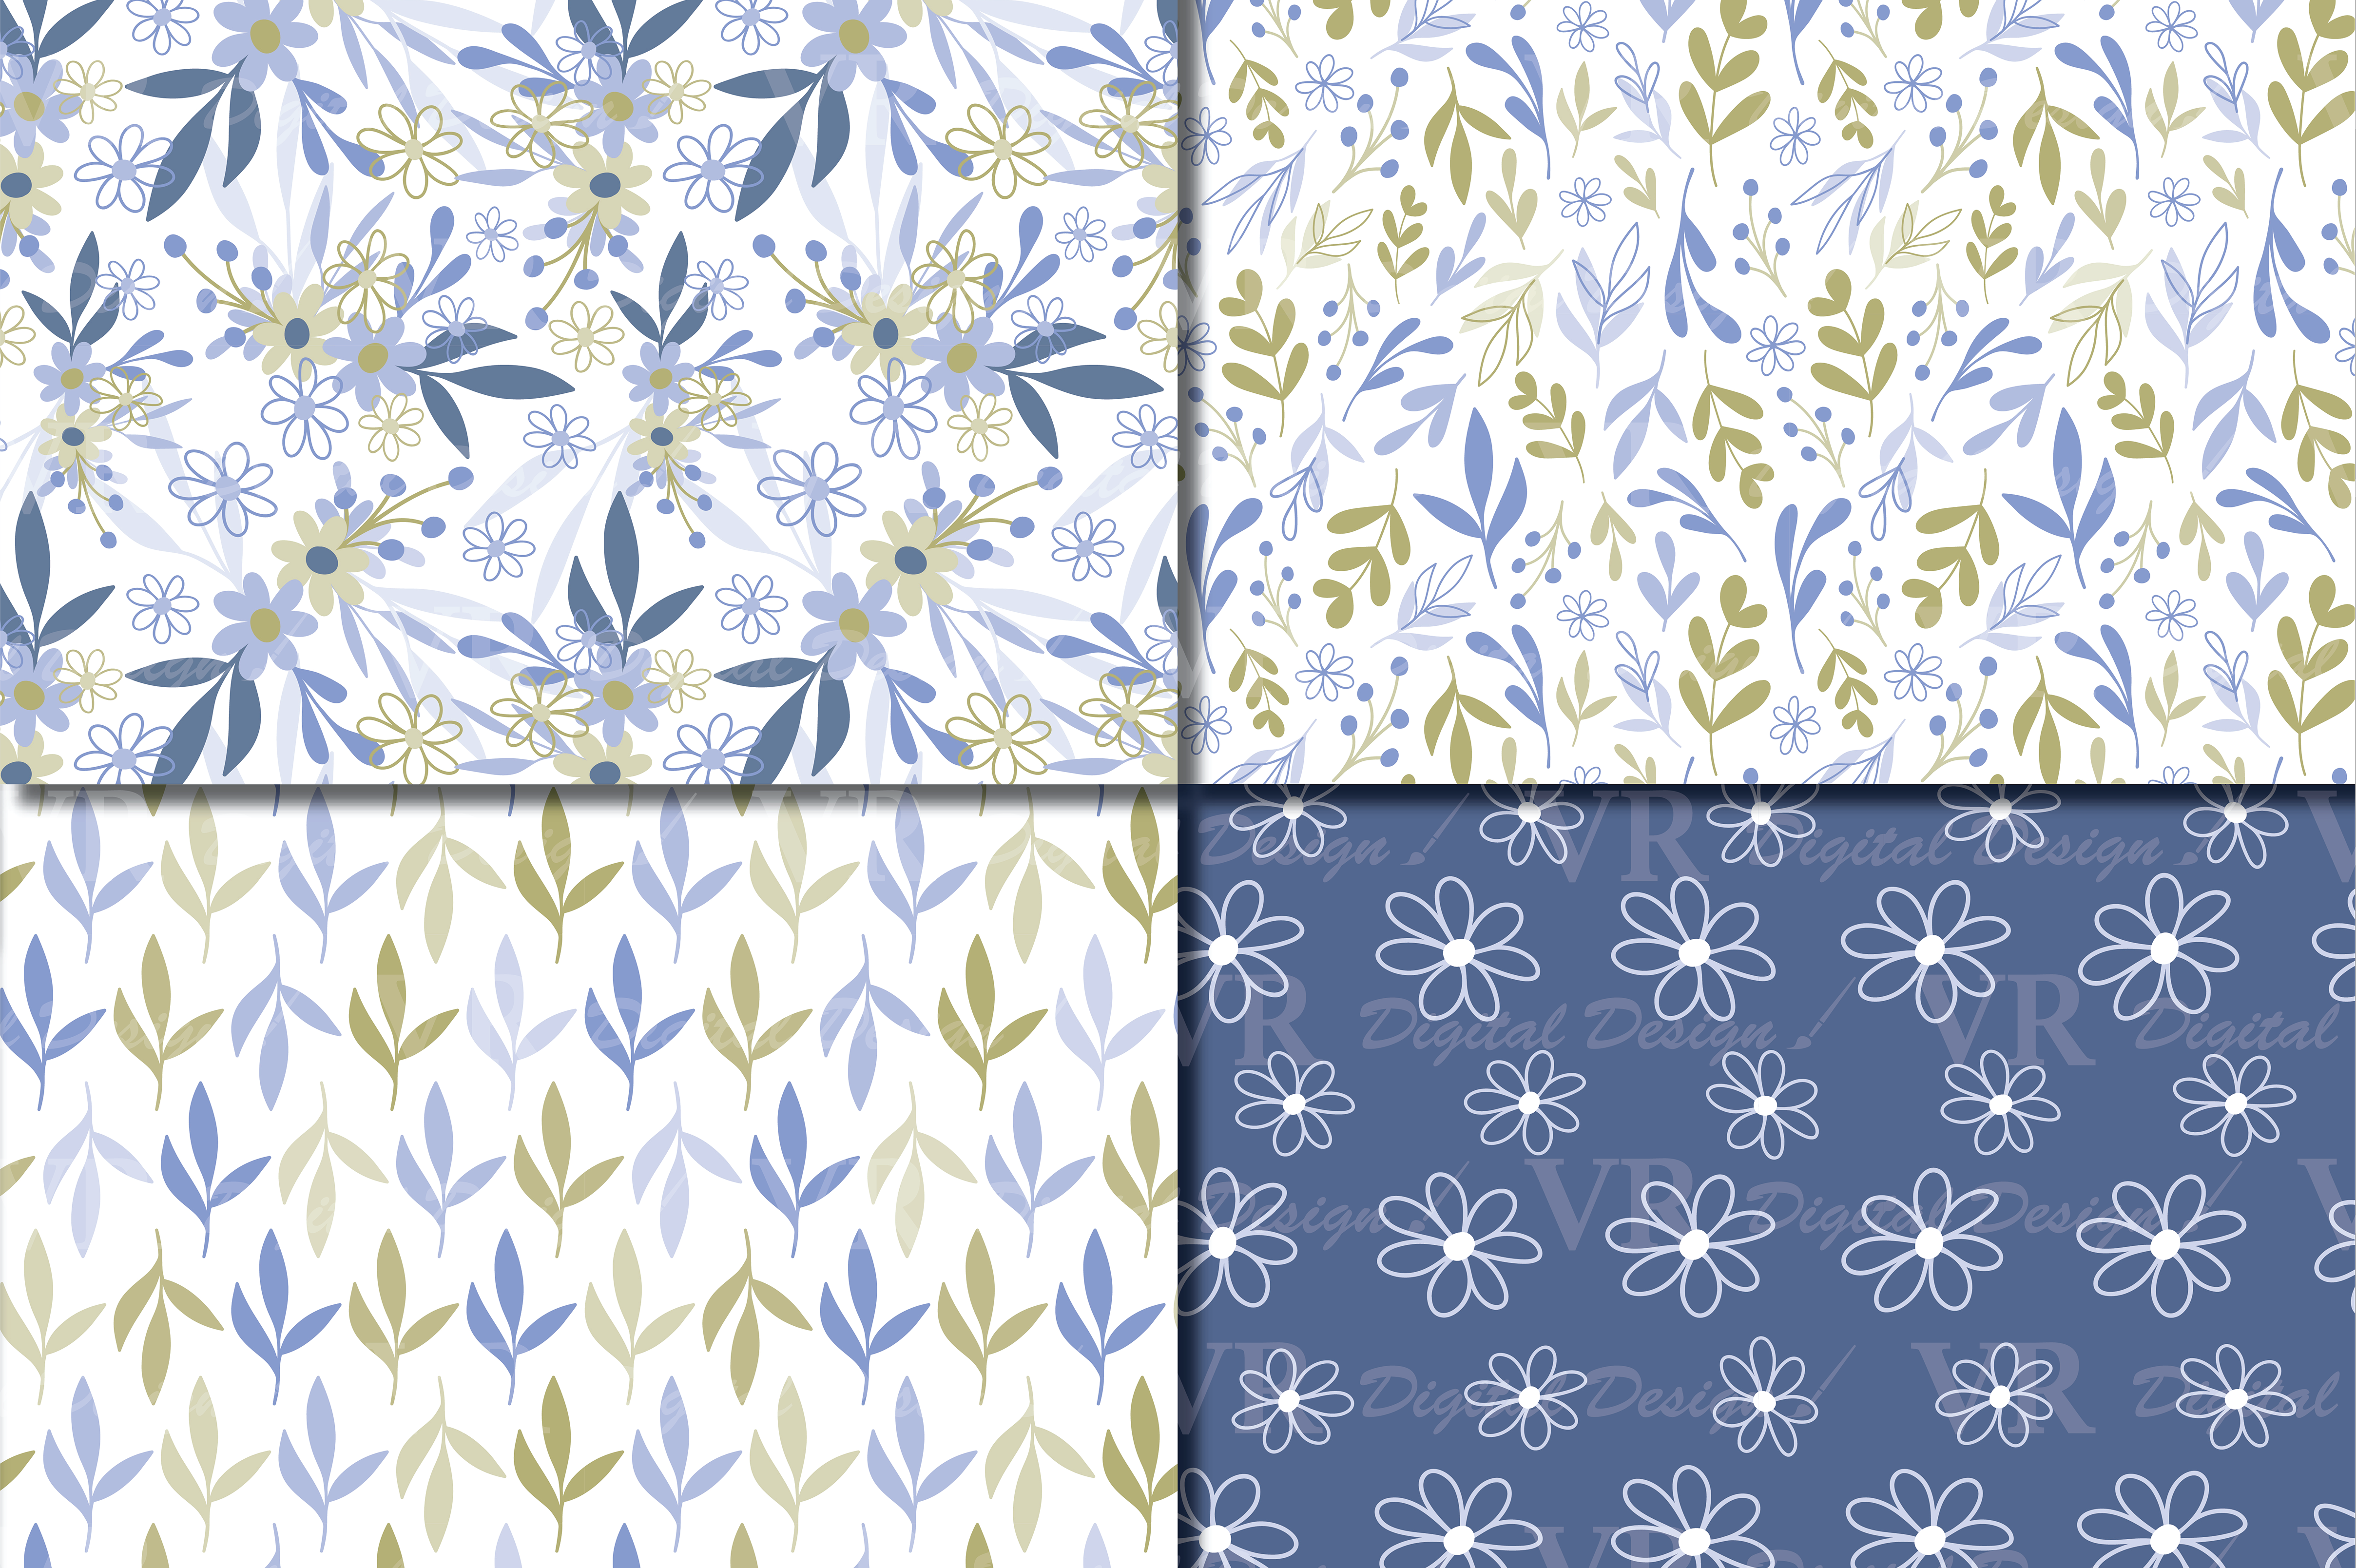 Download Free Seamless Blue And Green Hand Drawn Flowers And Leaves Digital for Cricut Explore, Silhouette and other cutting machines.